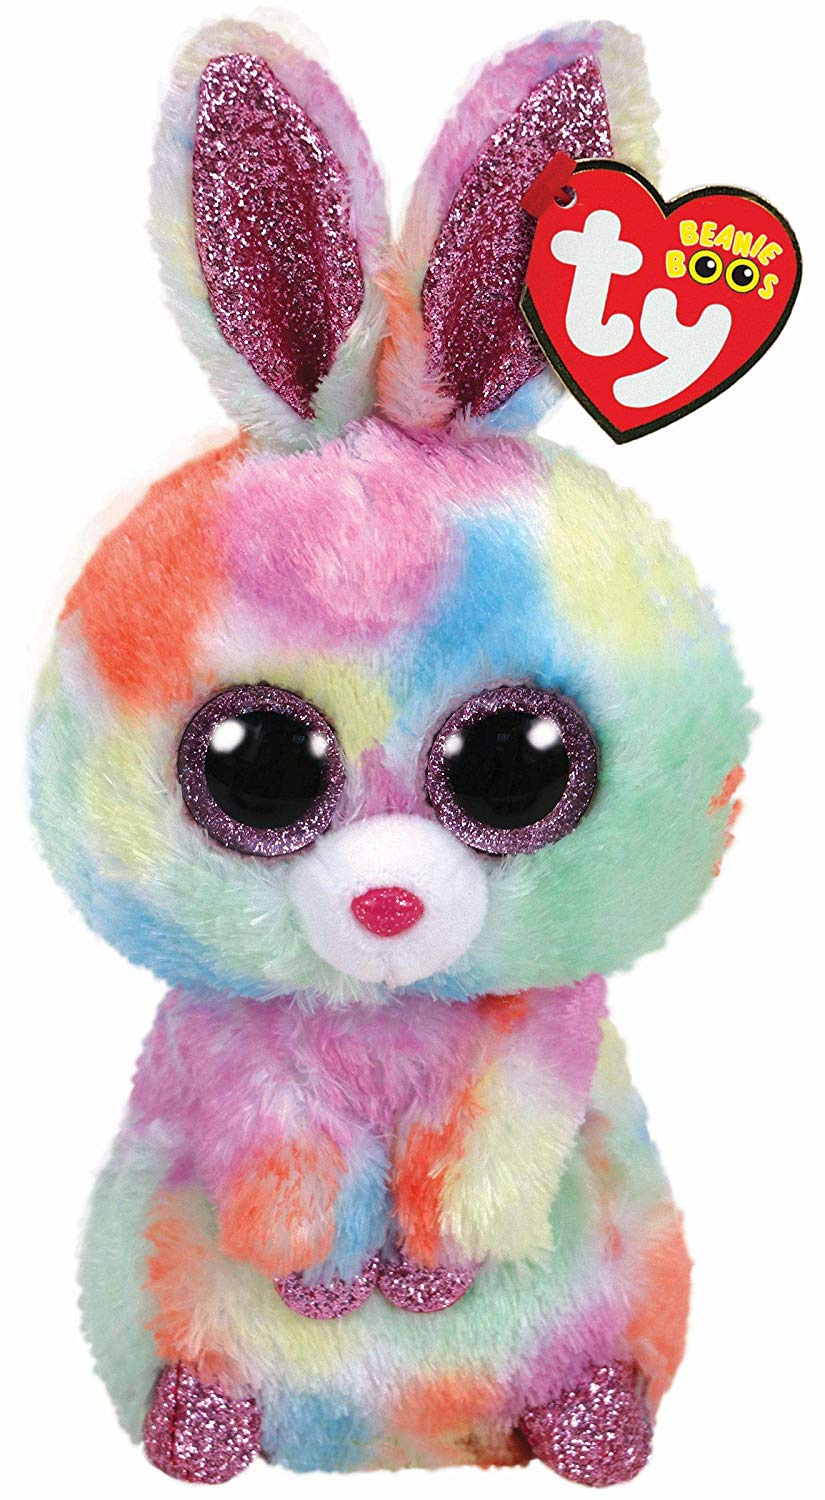 e7ce00c0760 Beanie Boo Large Toys Toys  Buy Online from Fishpond.co.nz